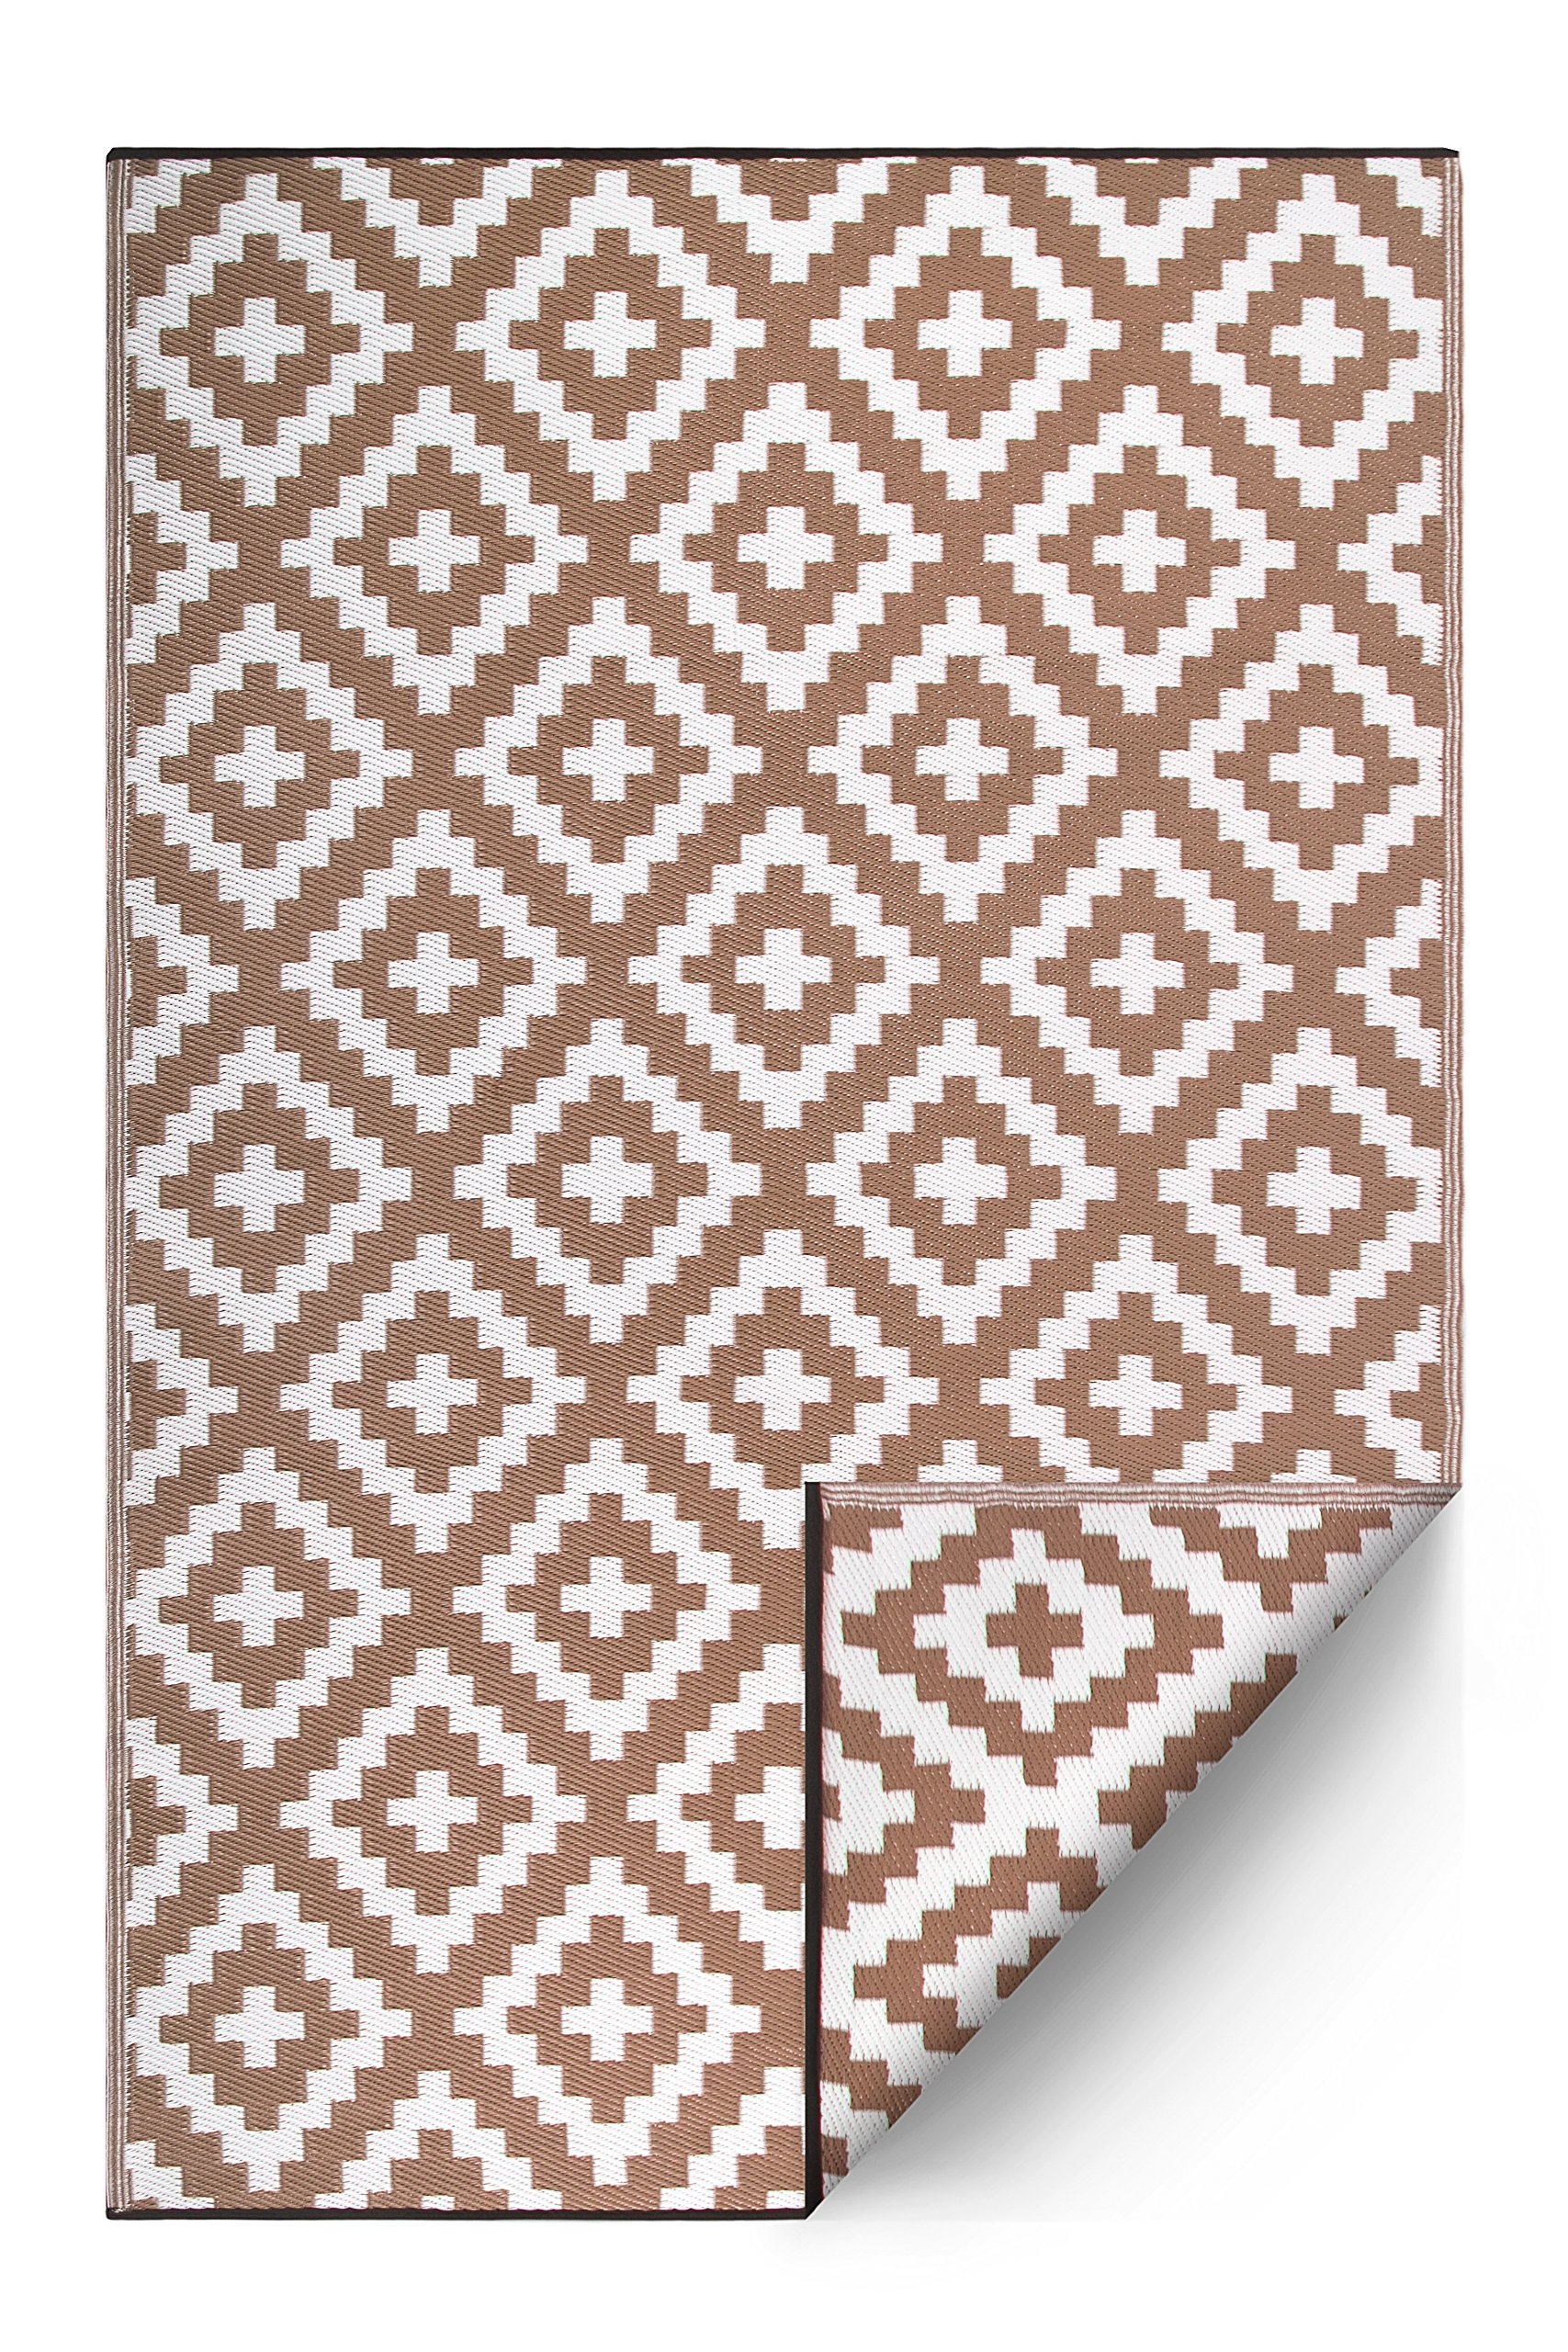 FH Home Indoor/Outdoor Recycled Plastic Floor Mat/Rug - Reversible - Weather & UV Resistant - Aztec - Taupe/White (4 ft x 6 ft)